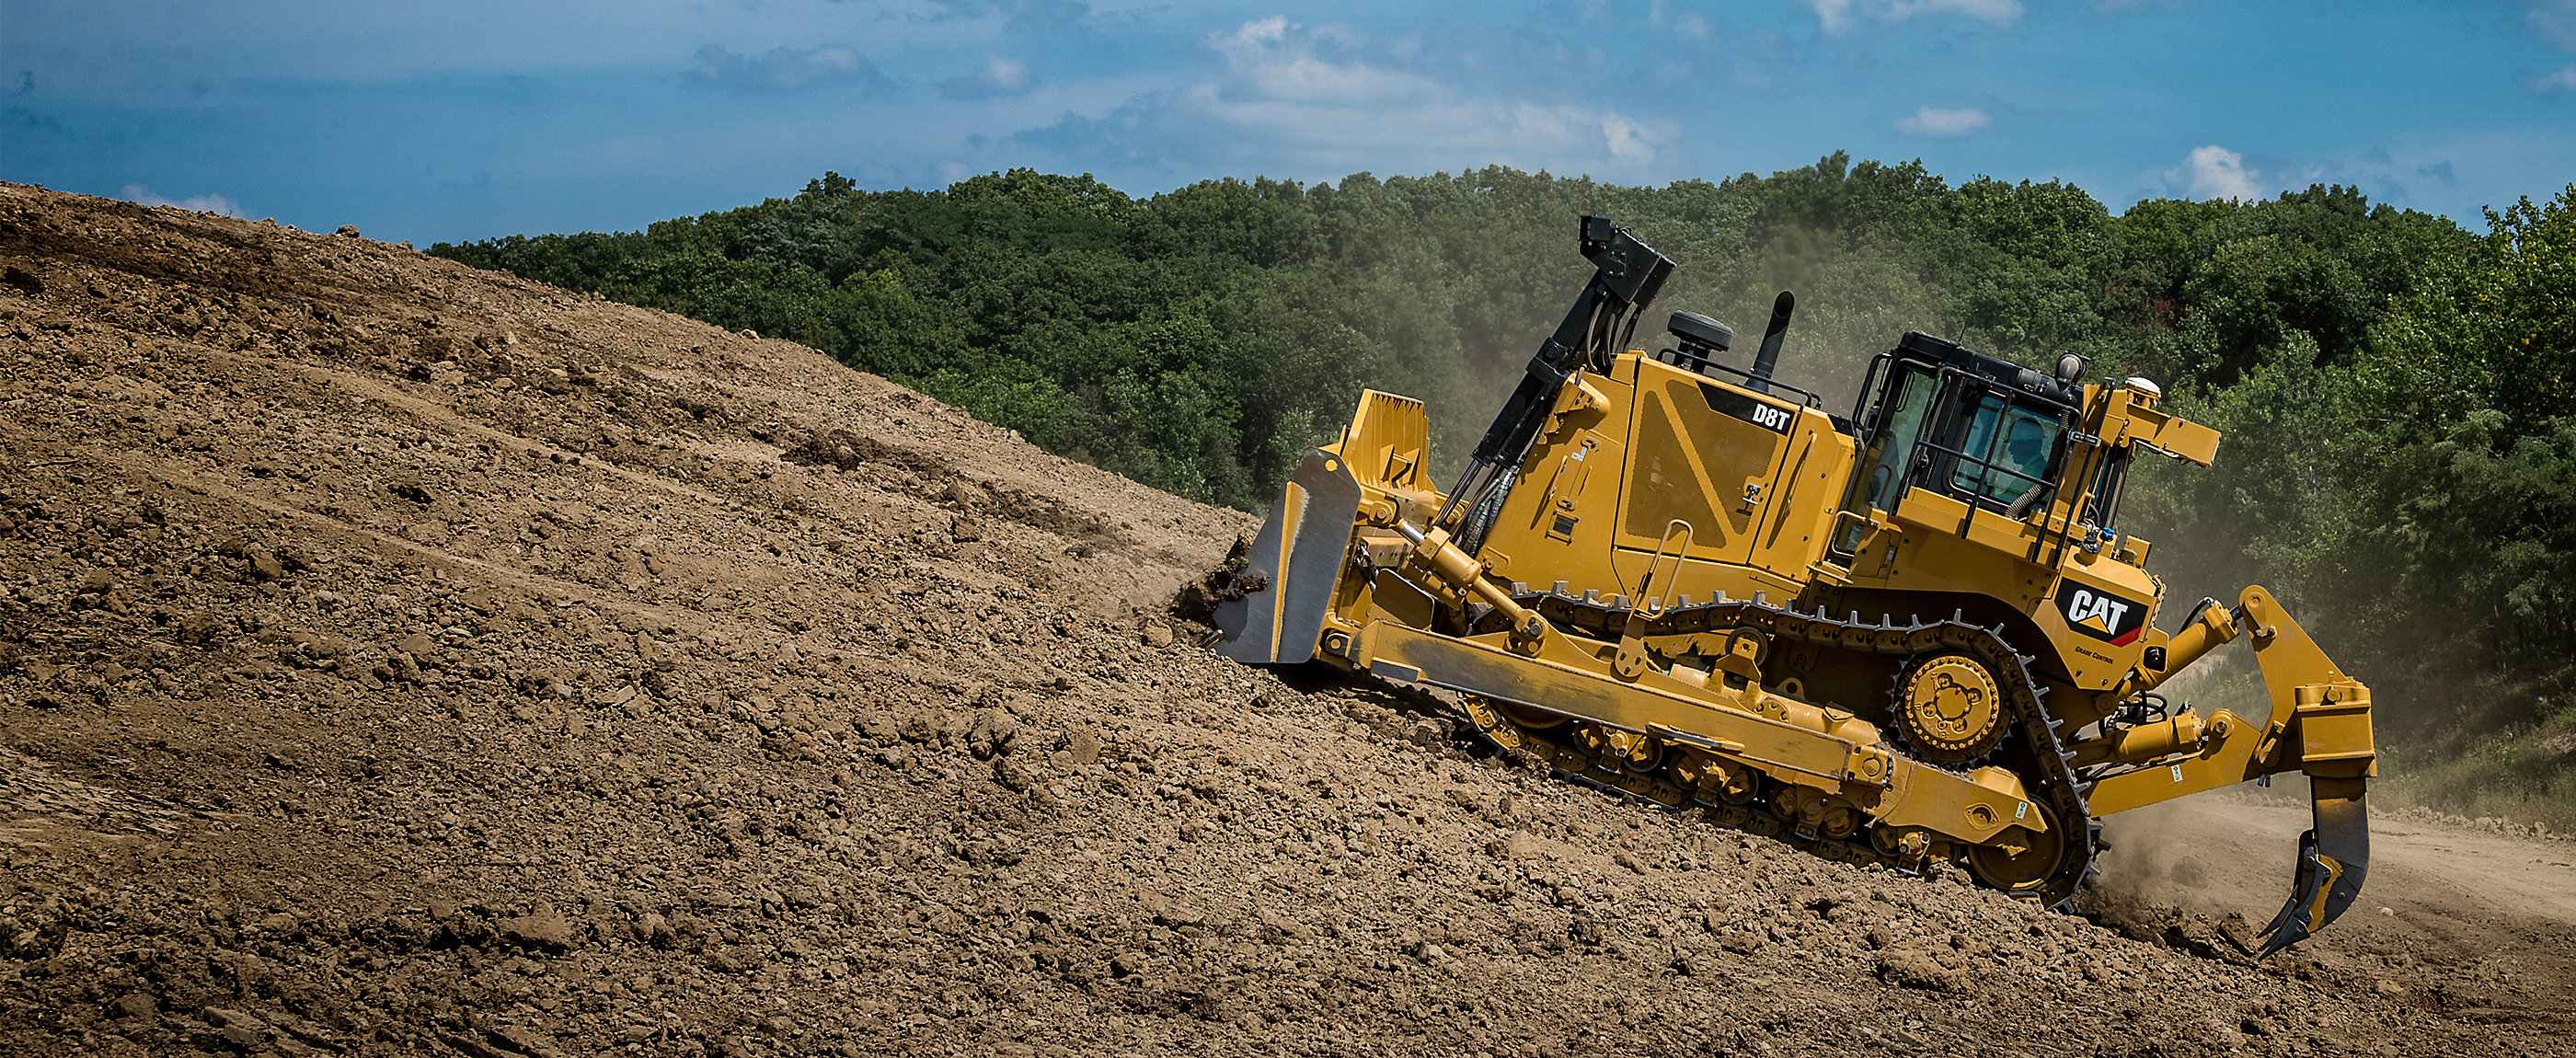 Caterpillar provides solutions to build a successful business